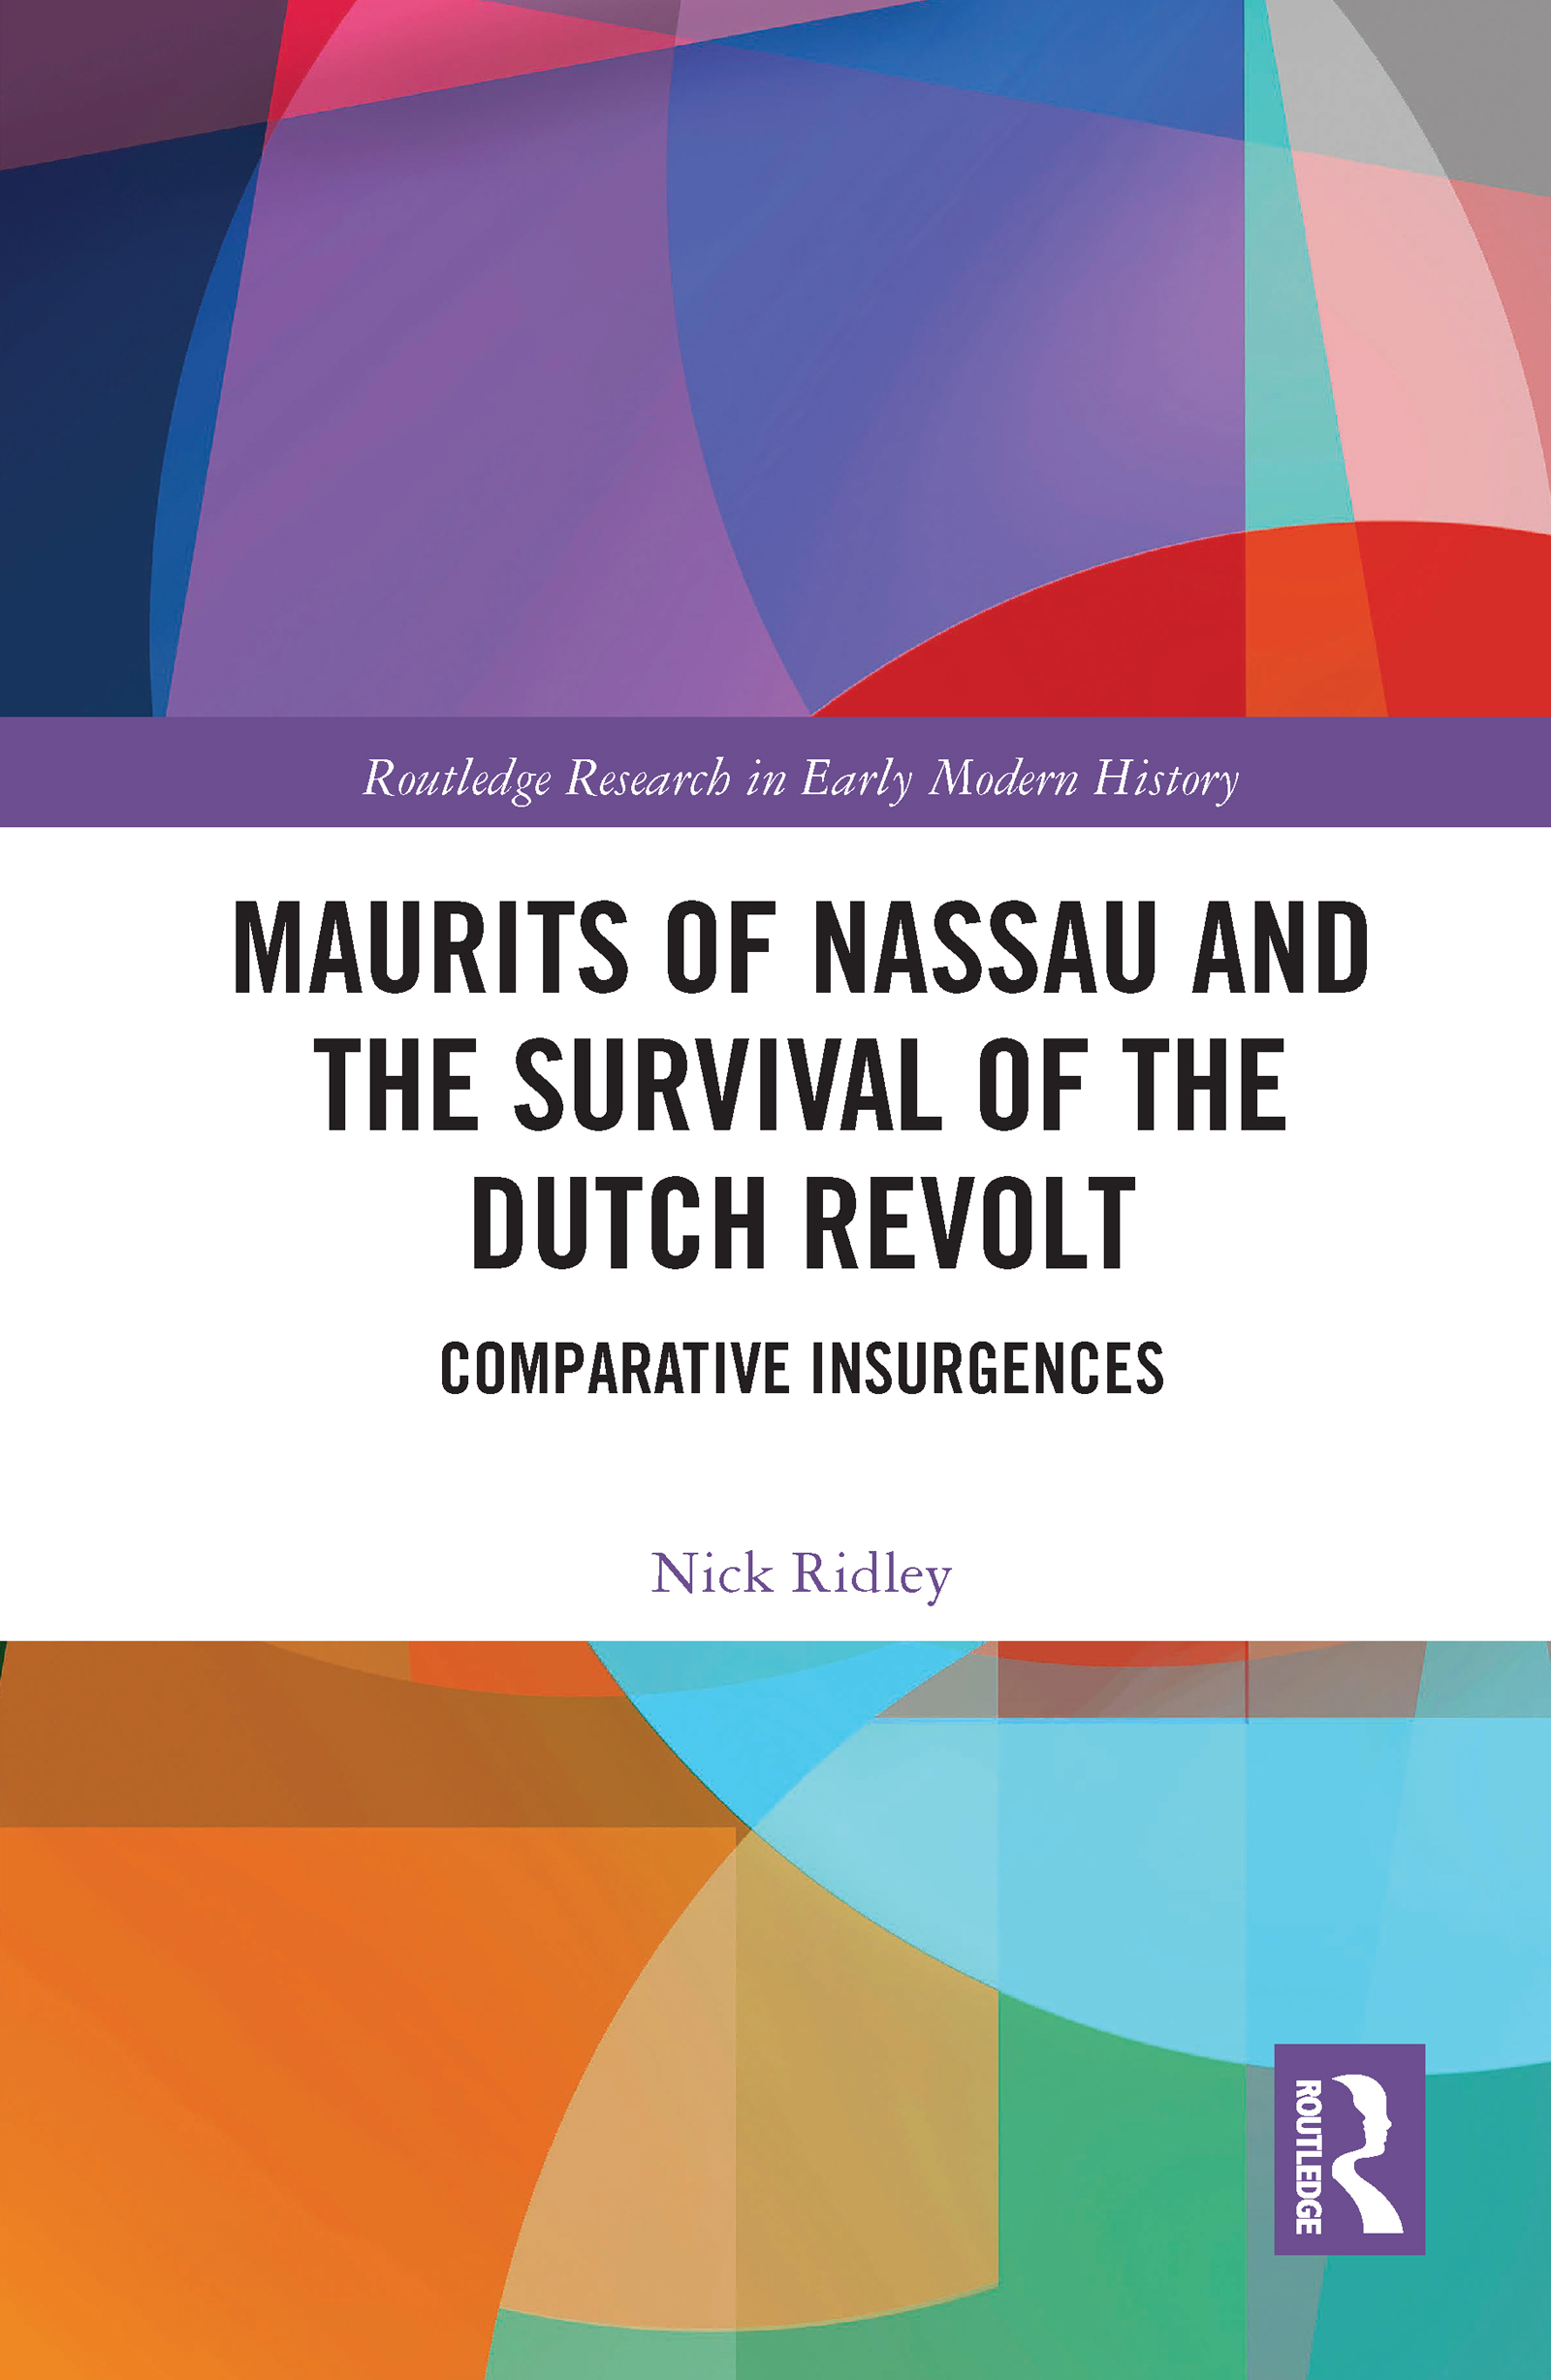 Maurits of Nassau and the Survival of the Dutch Revolt